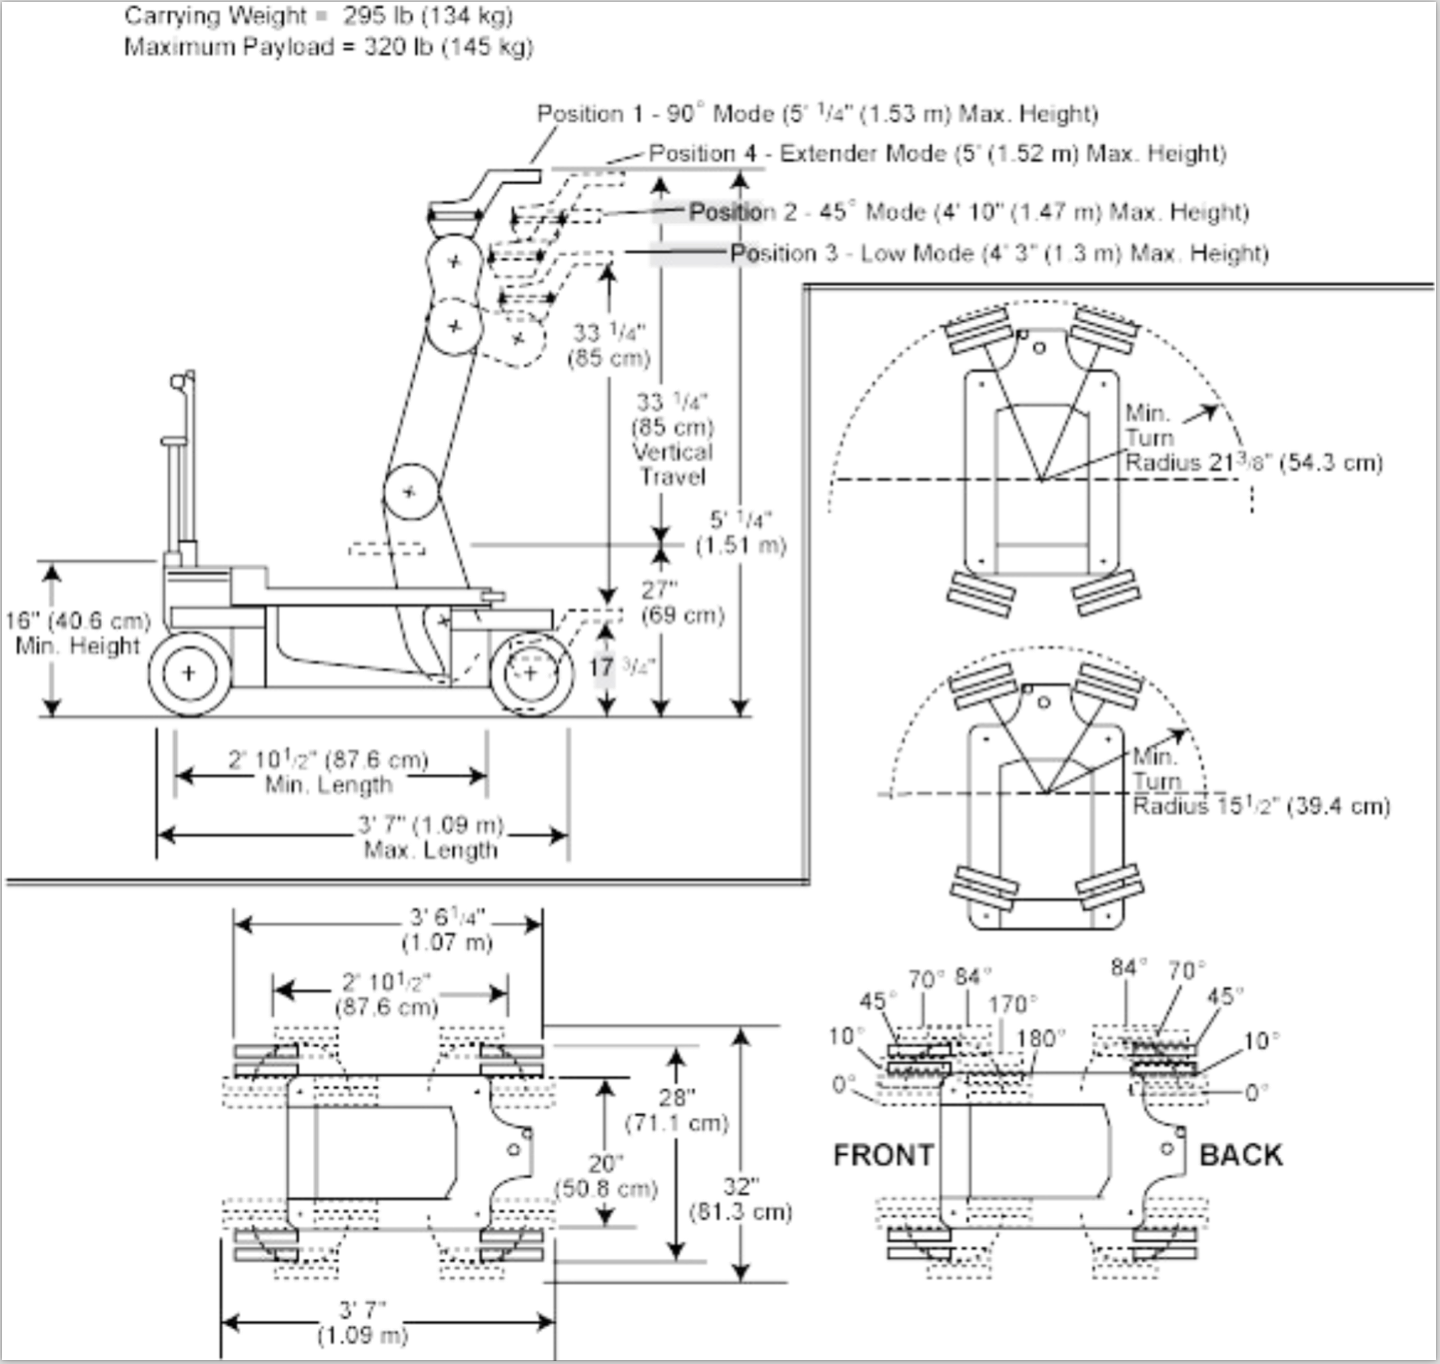 Chapman Super Pee Wee IV Dolly Line Drawing